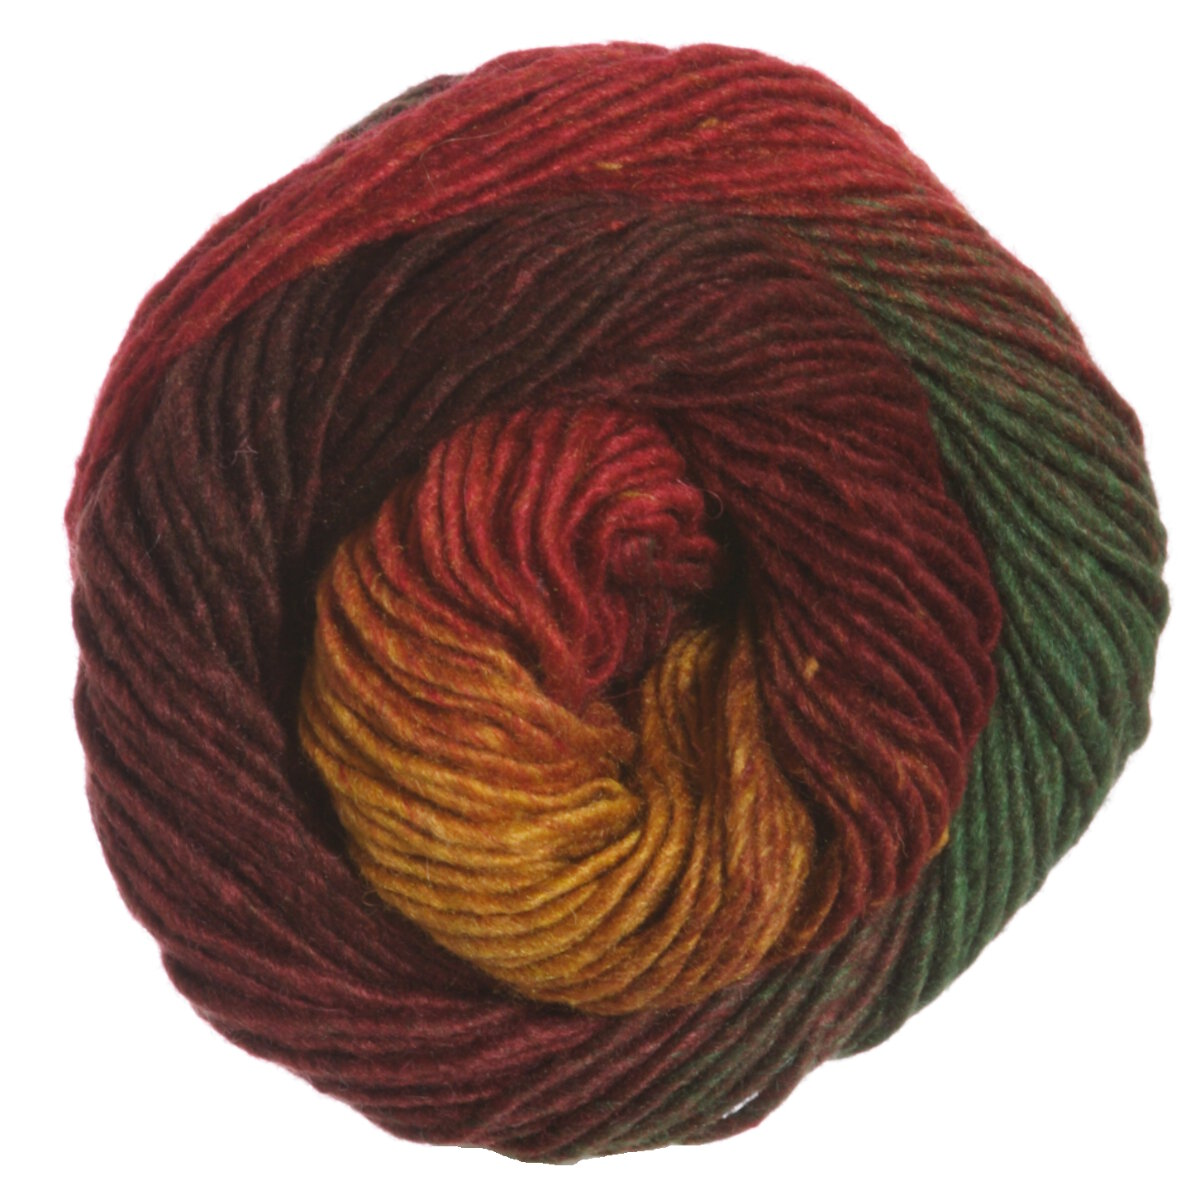 Crystal Palace Danube Aran Yarn - 633 Marsala at Jimmy Beans Wool